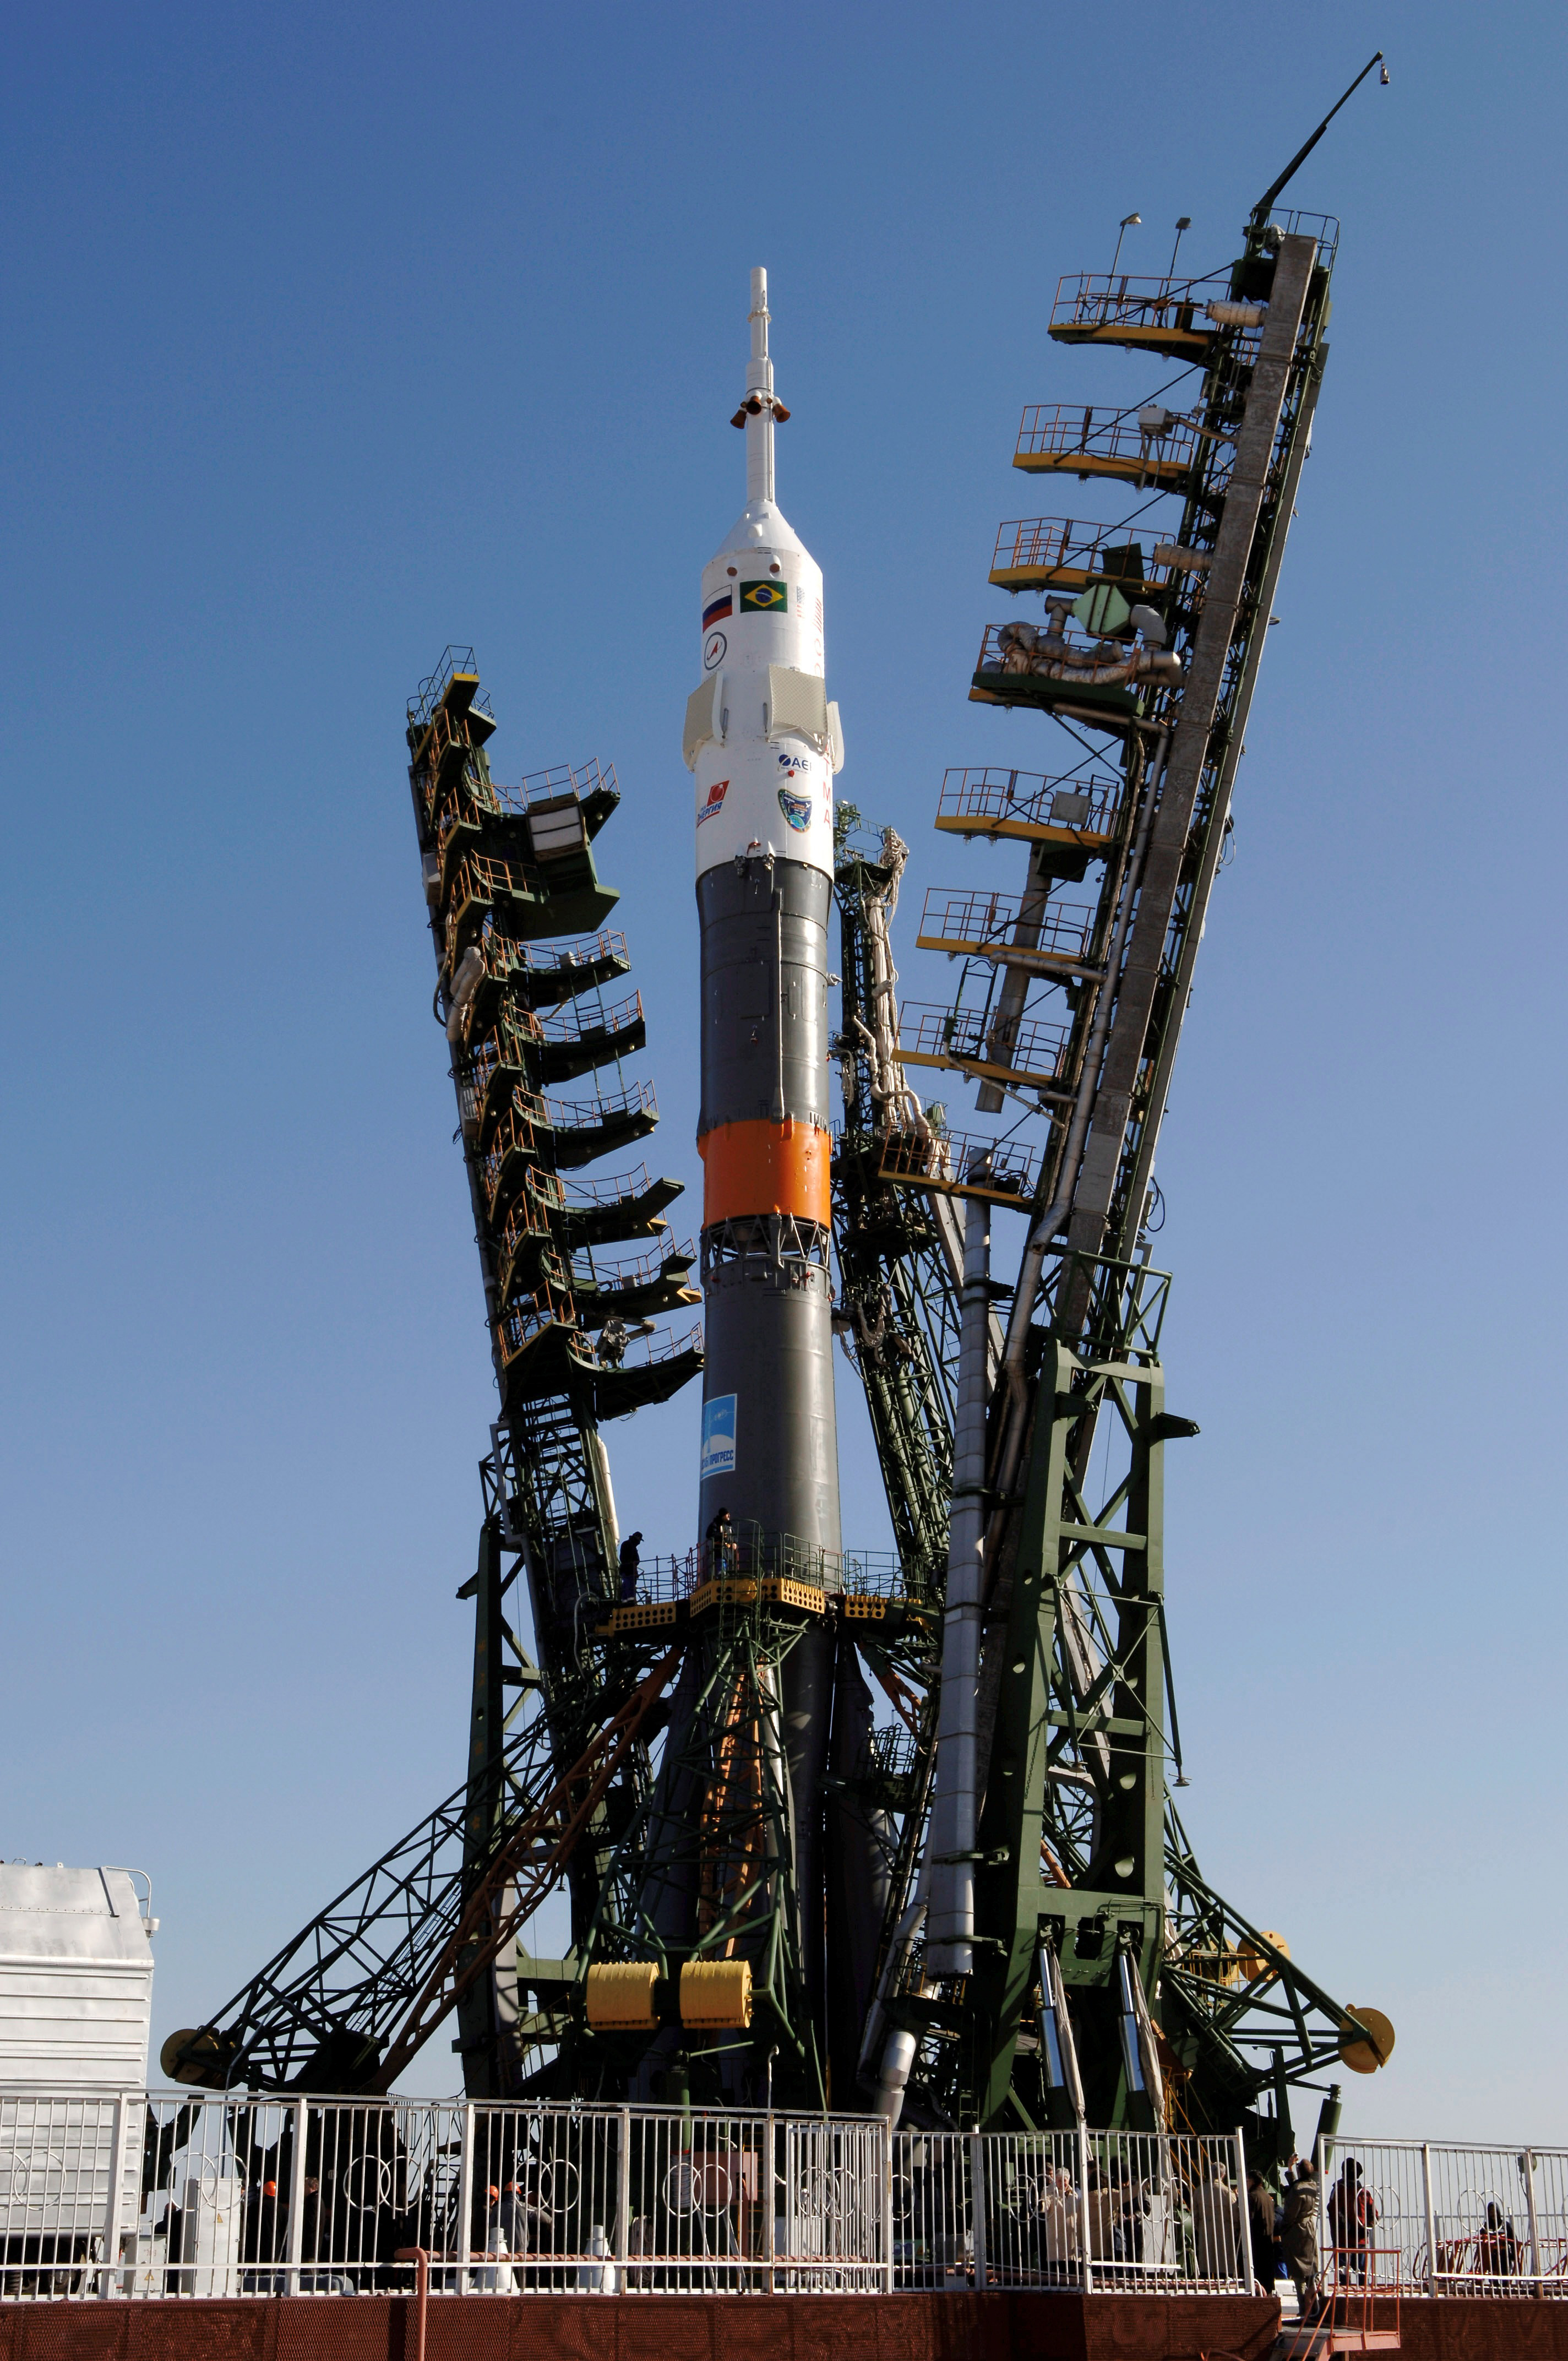 Expedition 13 Photograph of the Soyuz TMA.